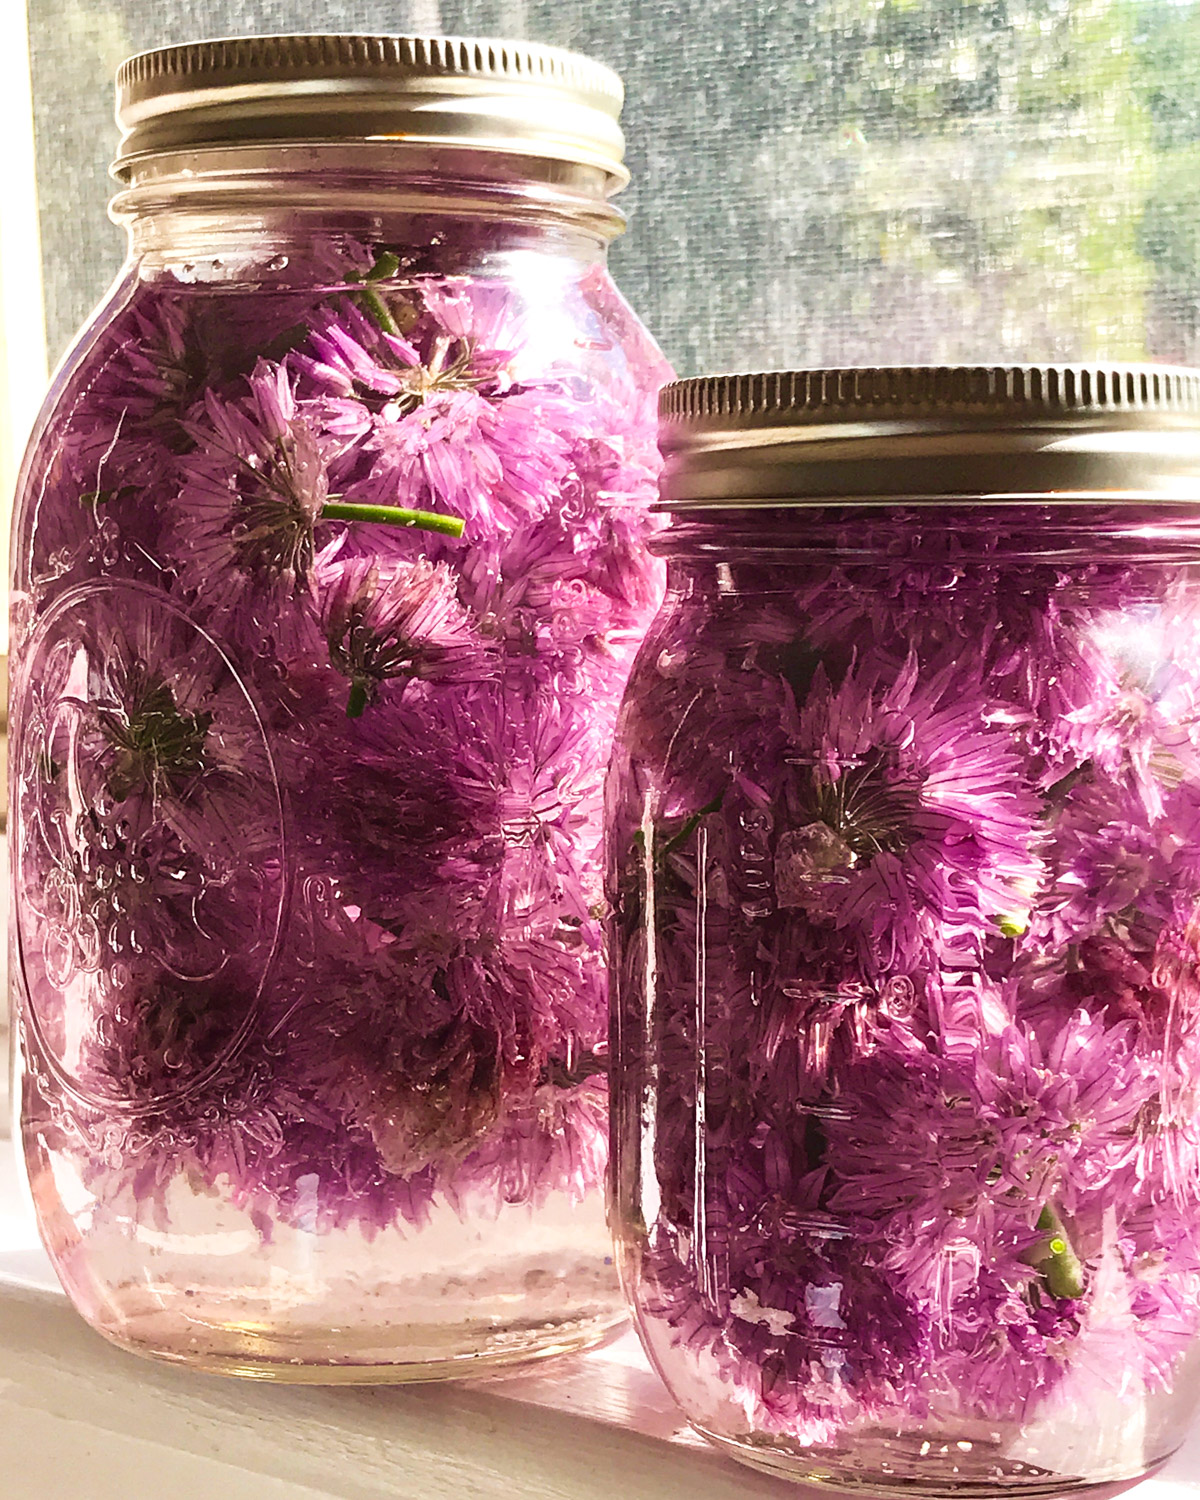 Infusing white vinegar with fresh chive blossoms.